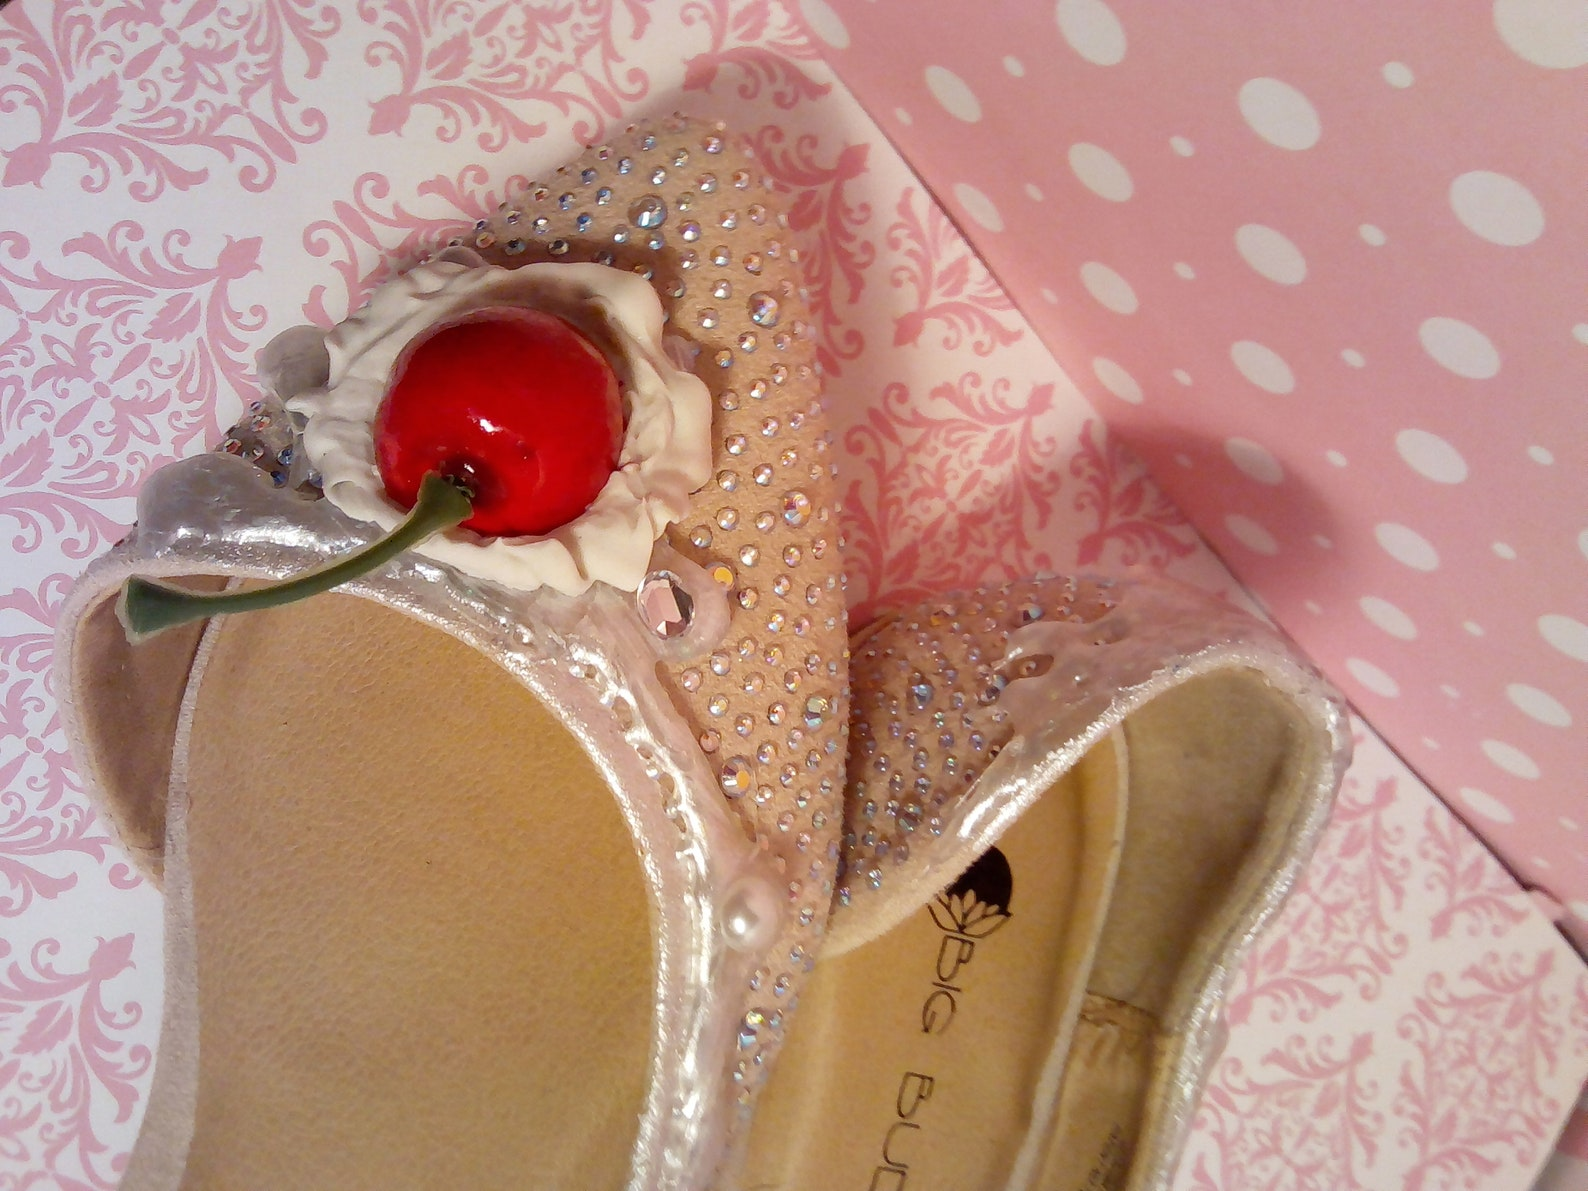 ice cream shoes champagne pearl swarovski crystal ballet flats,cake shoes,dessert shoes,women's shoes,girl's shoes,flat